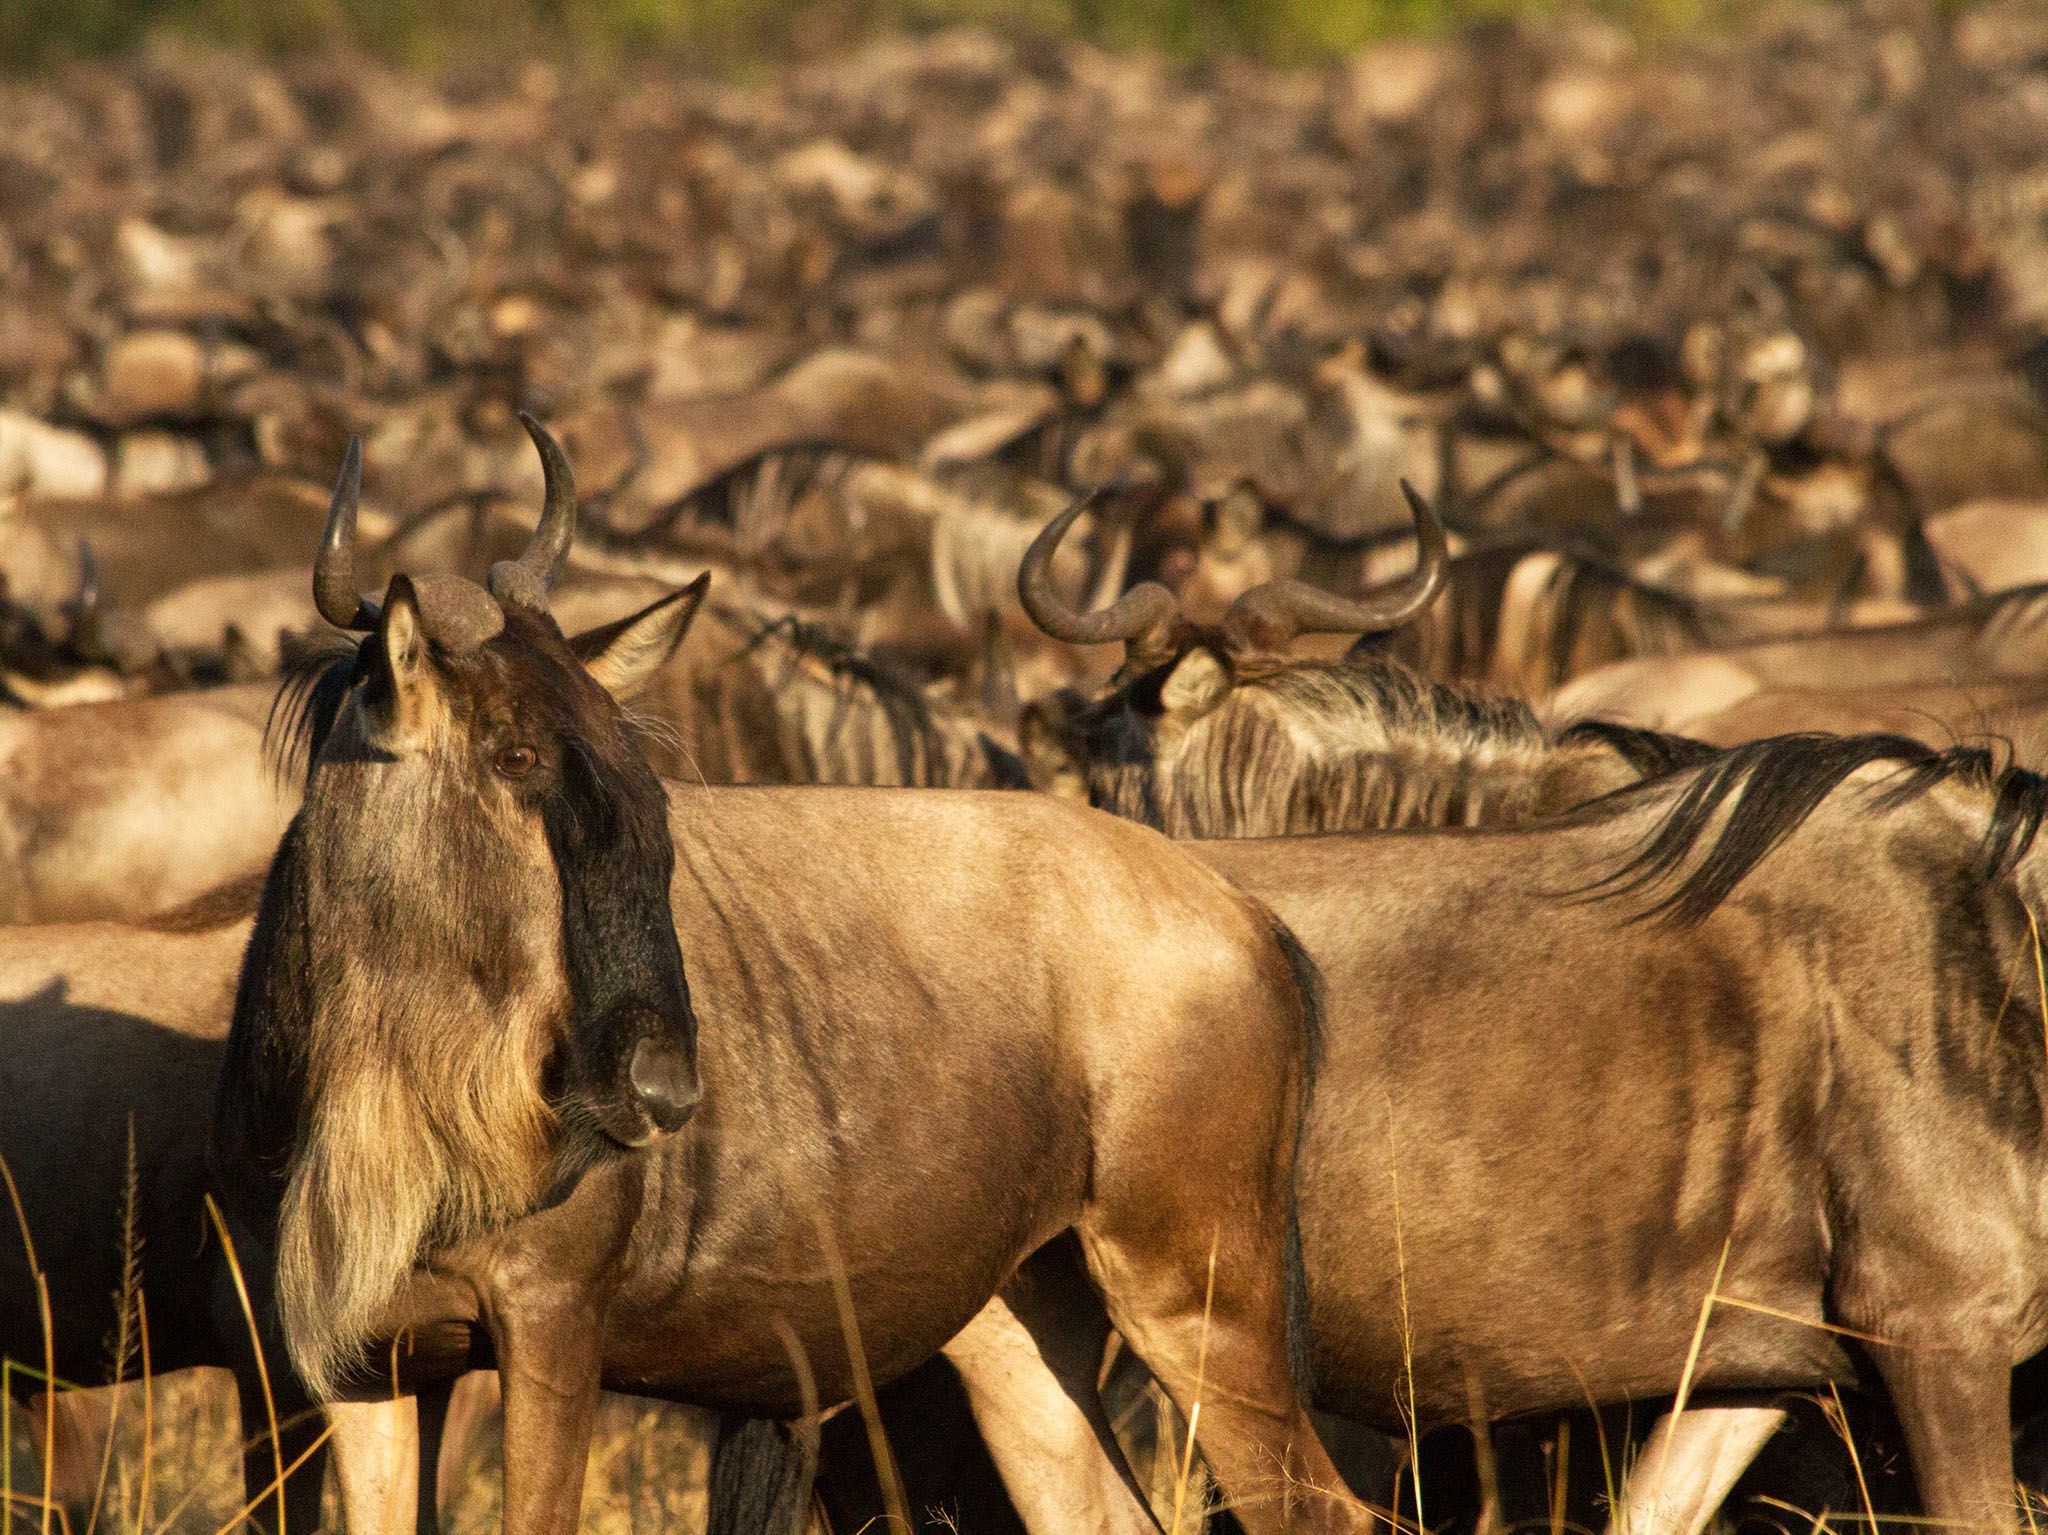 Kenya: Large herd of wildebeest waiting and gathering before crossing the Mara River. This image... [Photo of the day - January 2017]